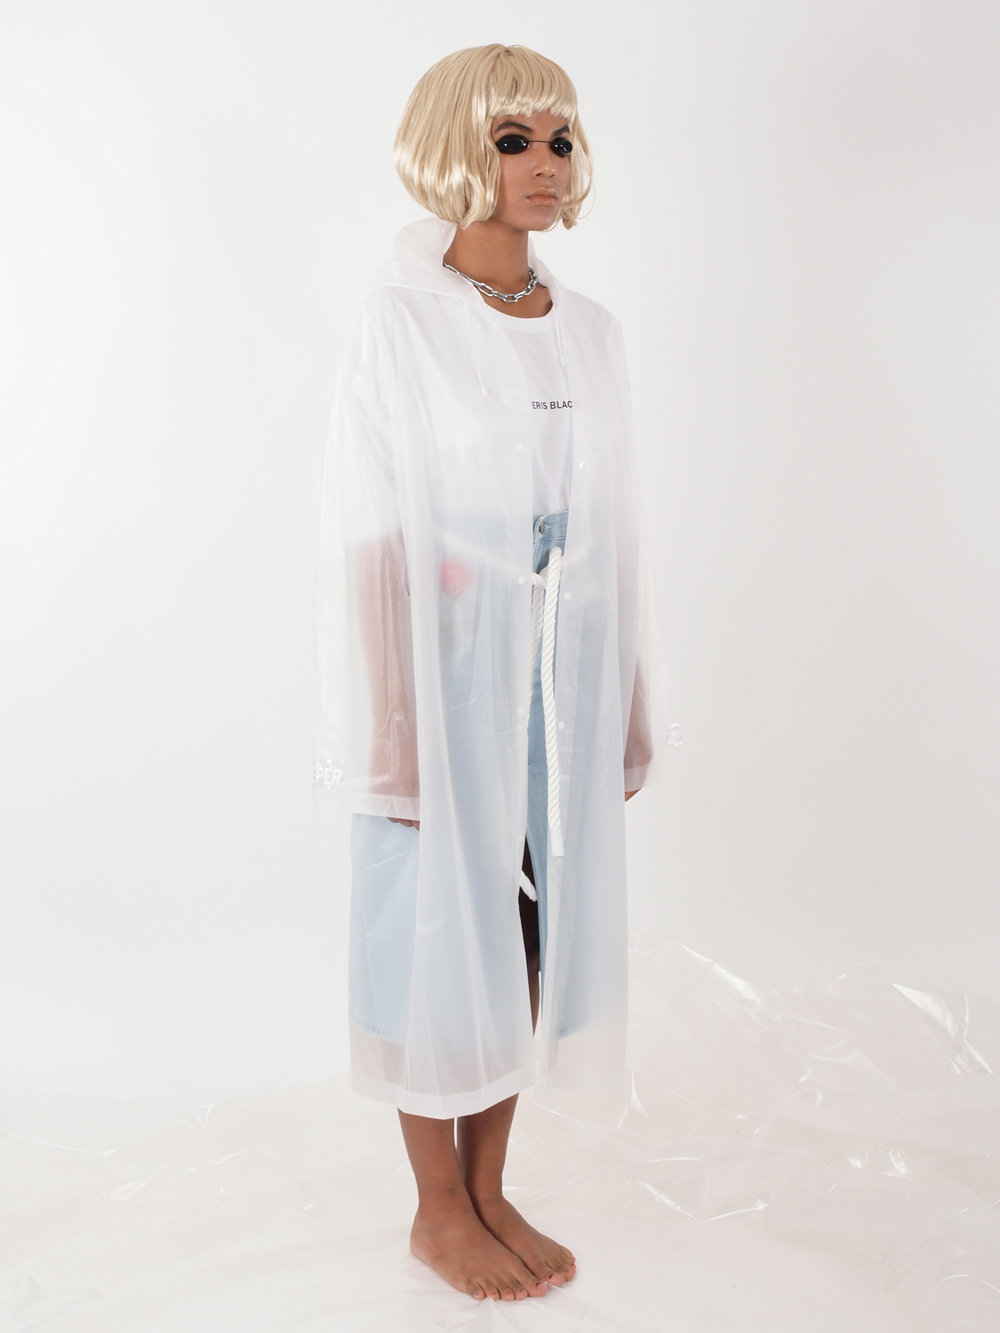 transparent rain coat2 hs.jpg